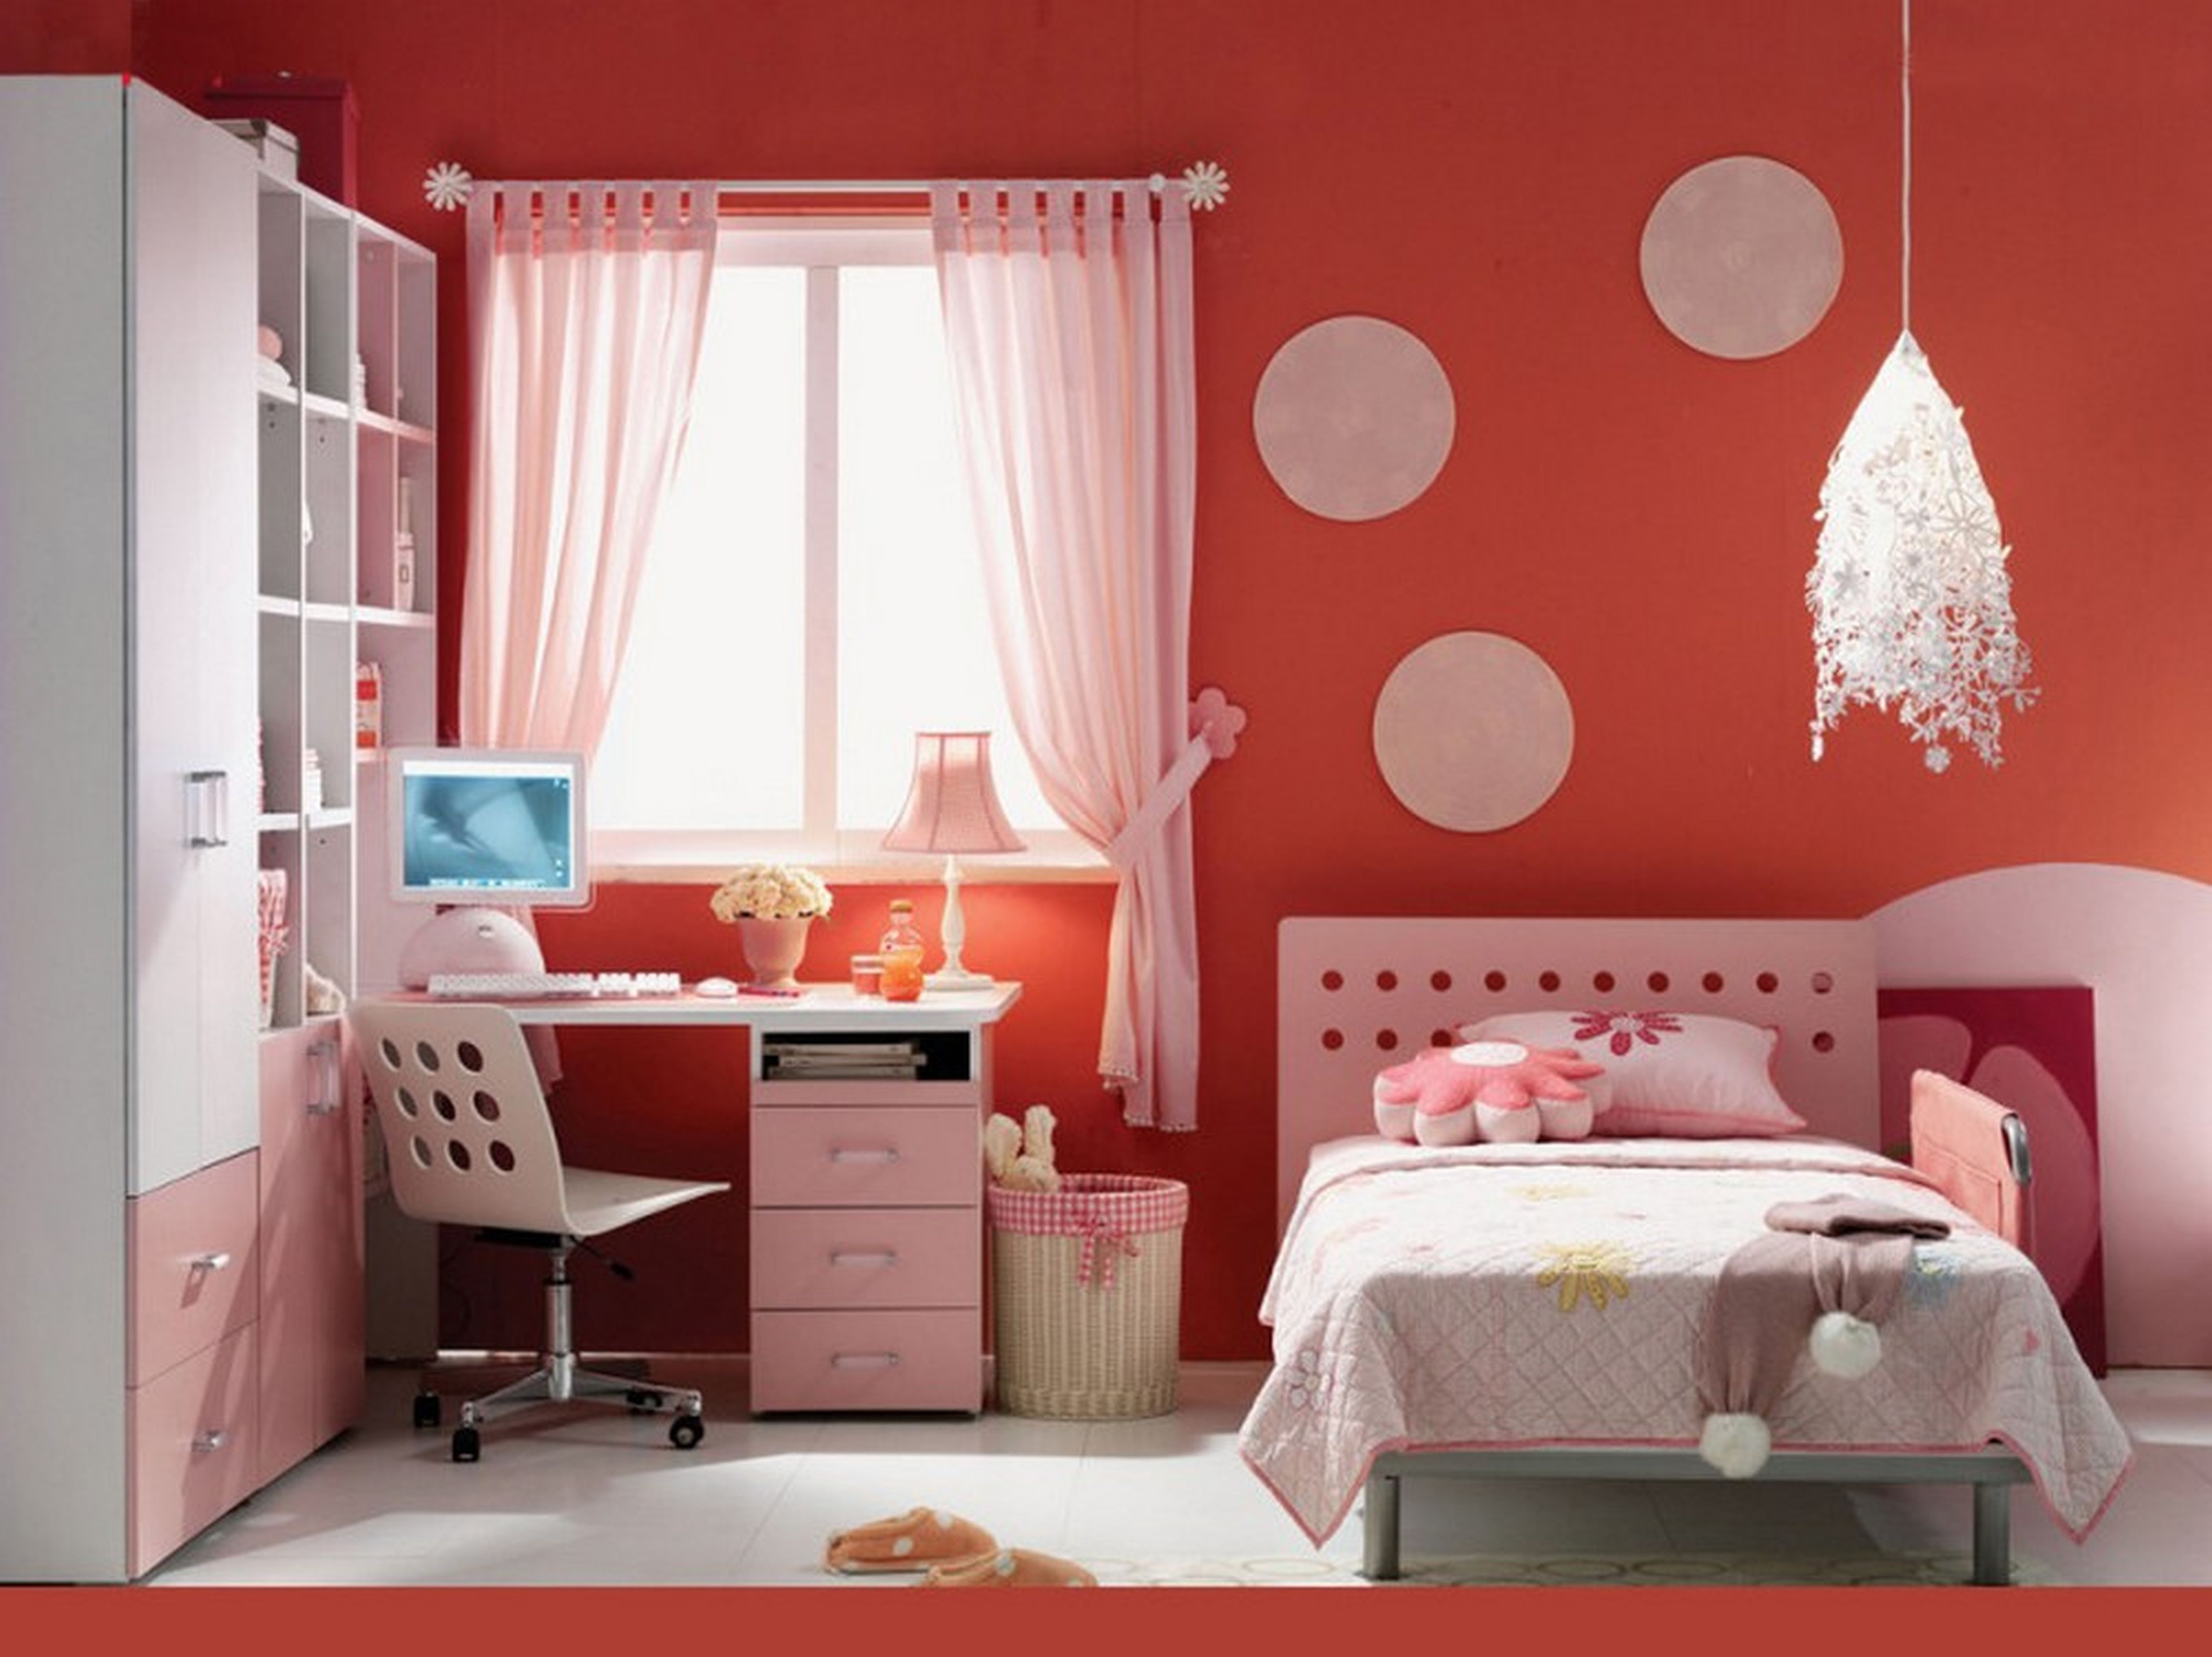 New Wall Painting Ideas for Teens